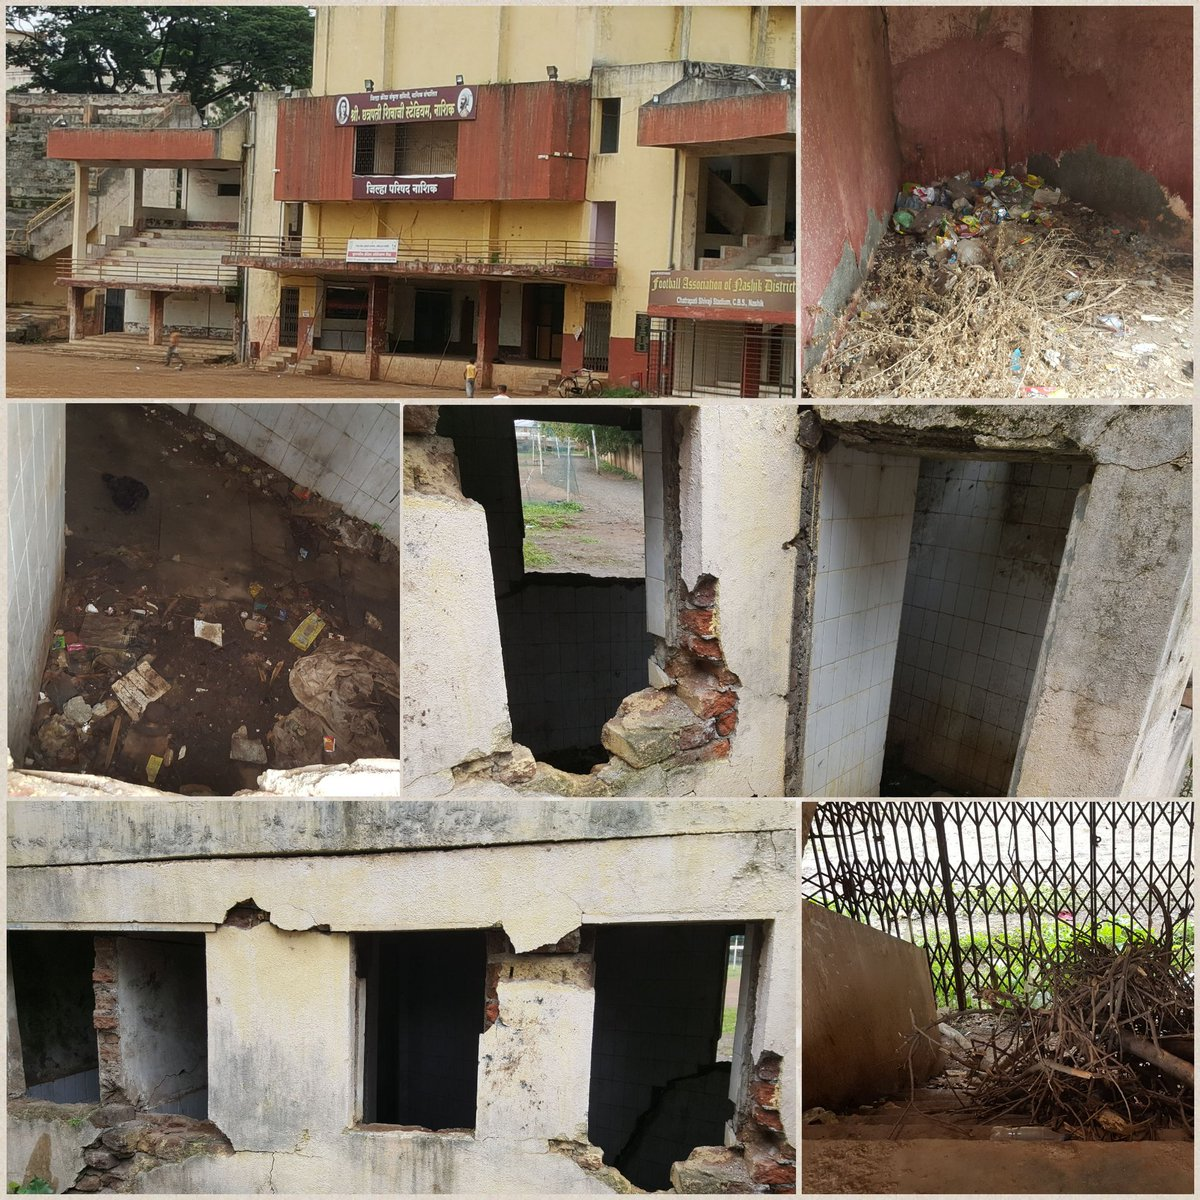 Condition of the Chatrapati Shivaji stadium Nashik..here we nurture our young athletes and expect them to bring Olympic medals. #SmartCities @Tukaram_Indias @dionashik @NashikNews<br>http://pic.twitter.com/vrmrkAnxK5